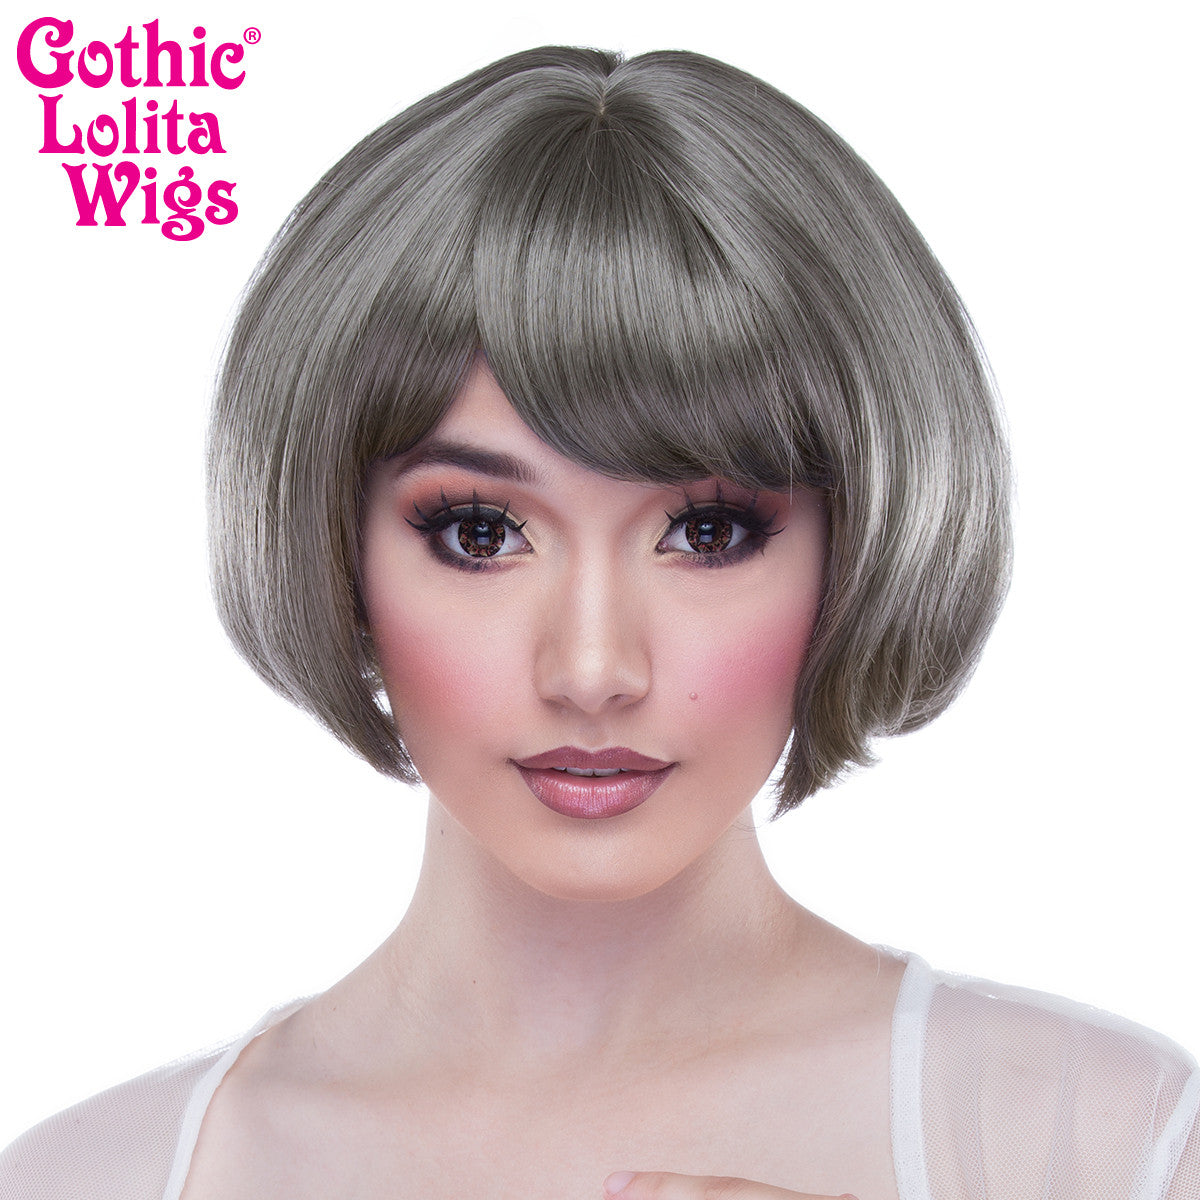 Gothic Lolita Wigs® <br> Lolibob™ - Dark Grey Mix -00396